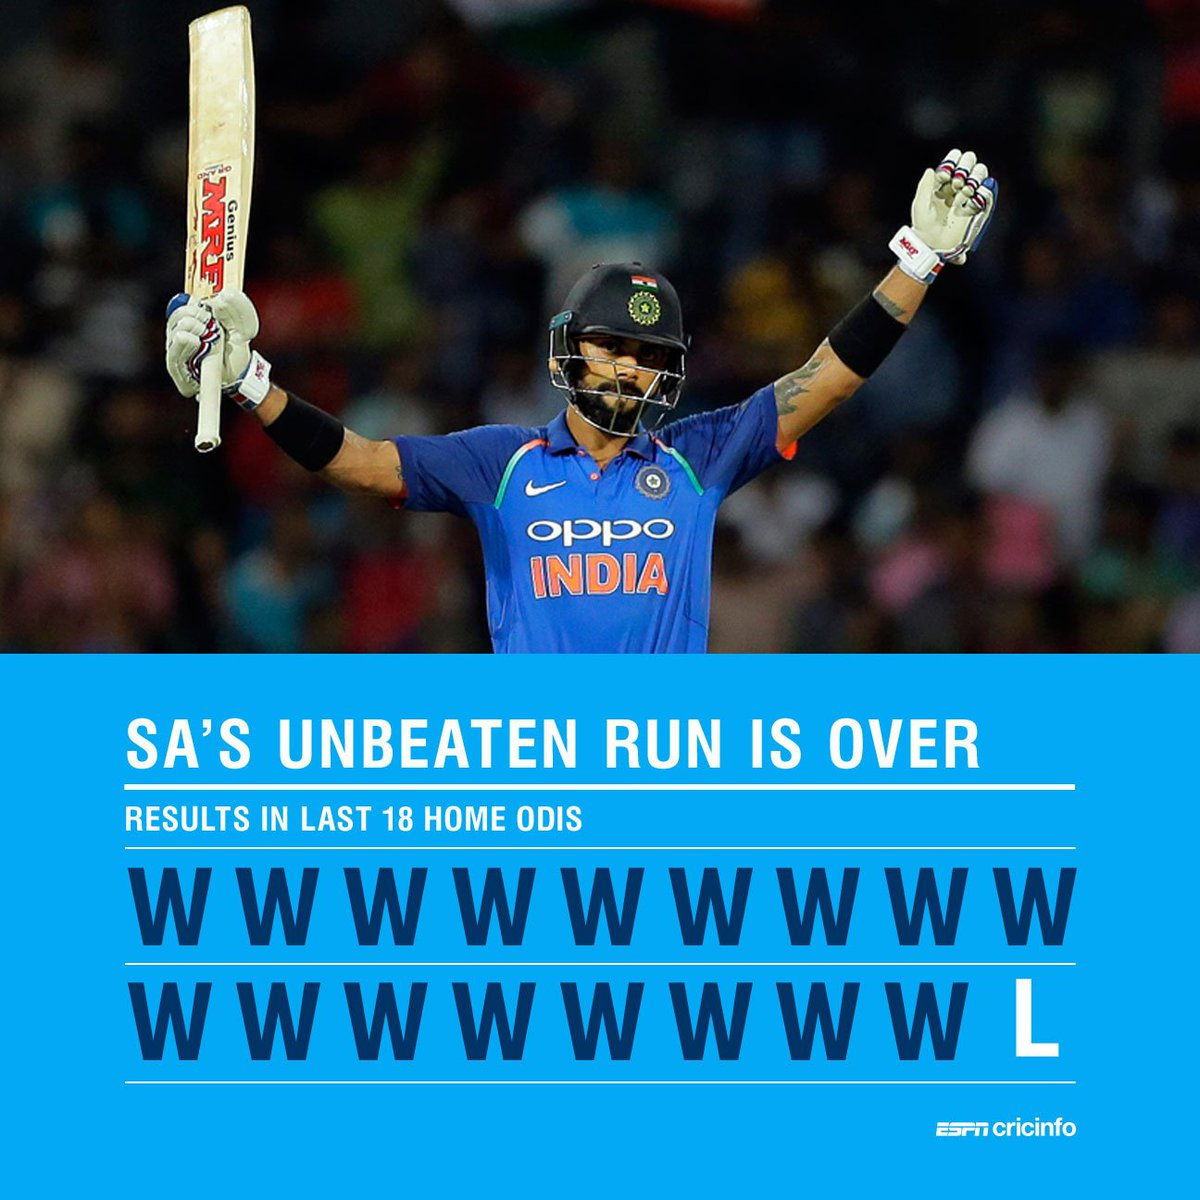 South Africa won 17 home ODIs in a row. Then they came up against Virat Kohli!  https://t.co/GeevxaHyL8